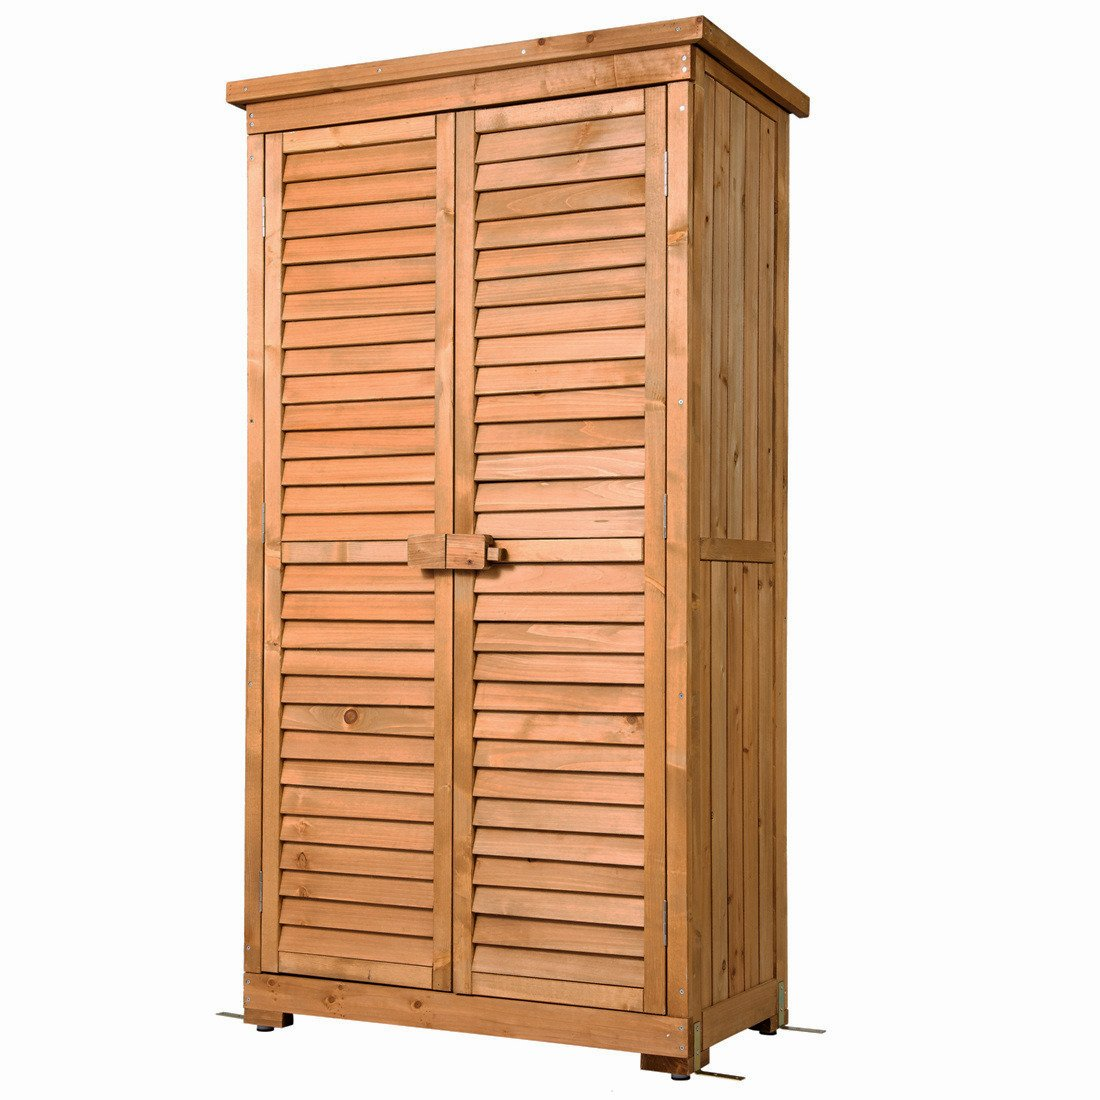 GOOD LIFE Outdoor Garden Wooden Storage Cabinet Furniture Waterproof Tool Shed Blinds Lockers Nature Wood Color LNG384 Not Available